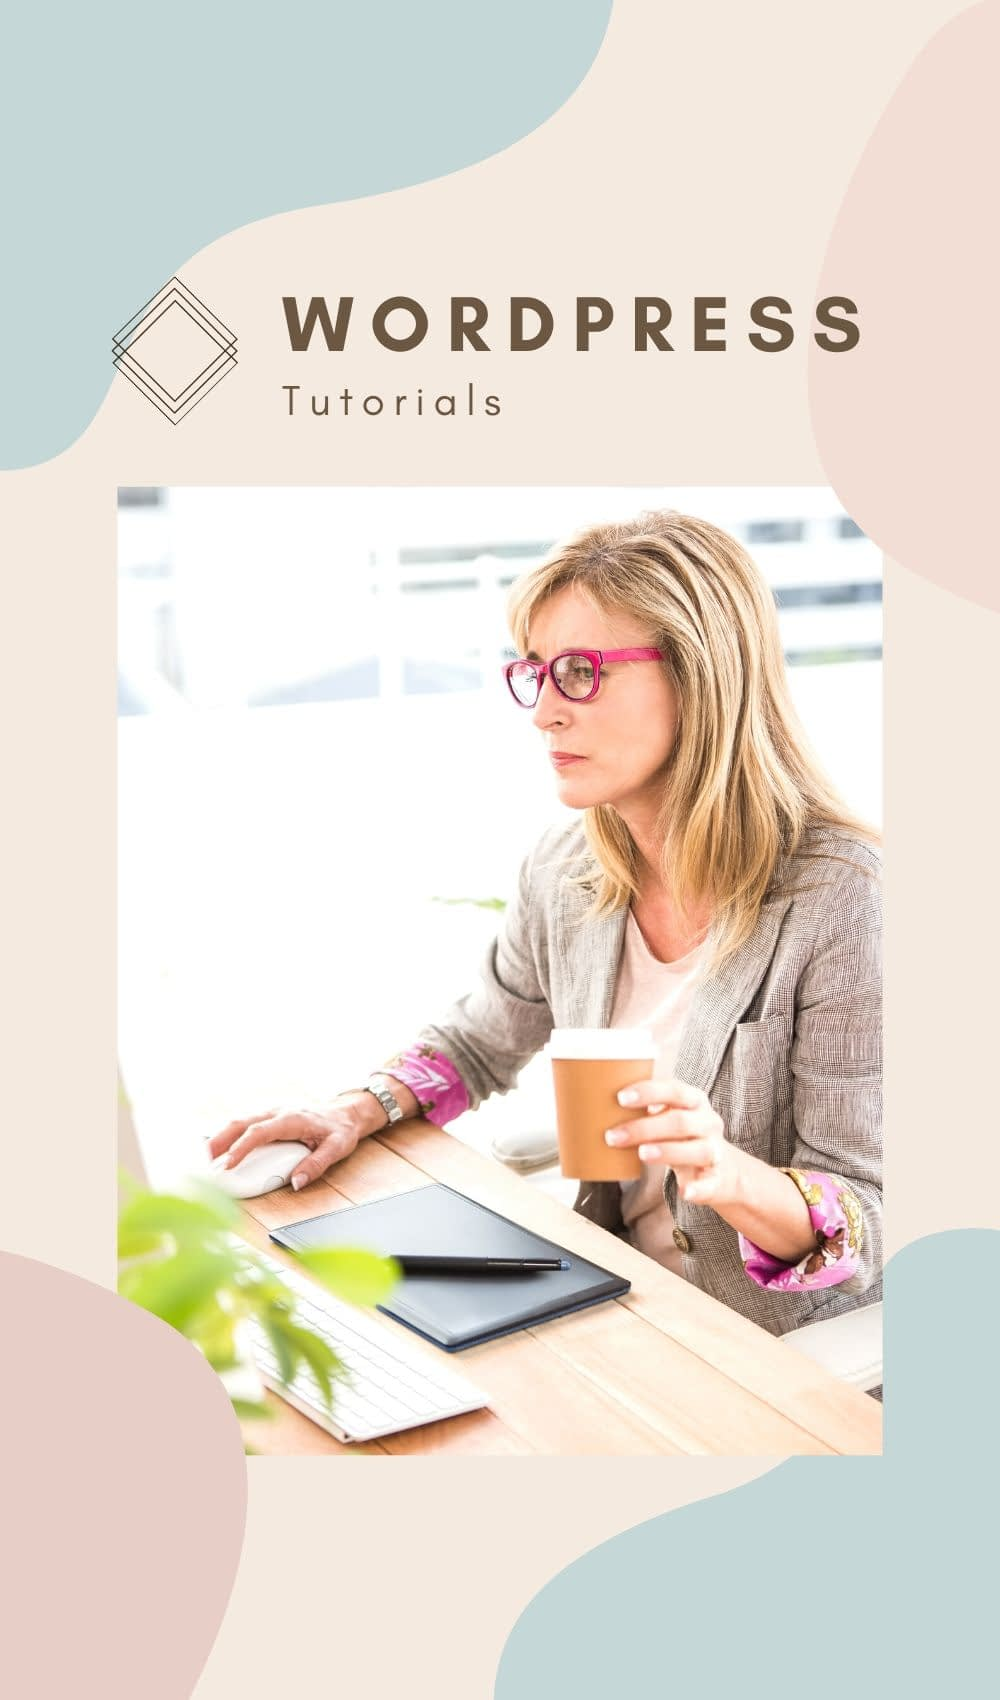 This WordPress tutorial list is designed to bring you just the right WordPress help you need when you need it. You'll find tutorials on setting up a WordPress Website, Adding a WordPress Theme, How to create a blog post on WordPress, WordPress SEO and so much more. Enjoy!